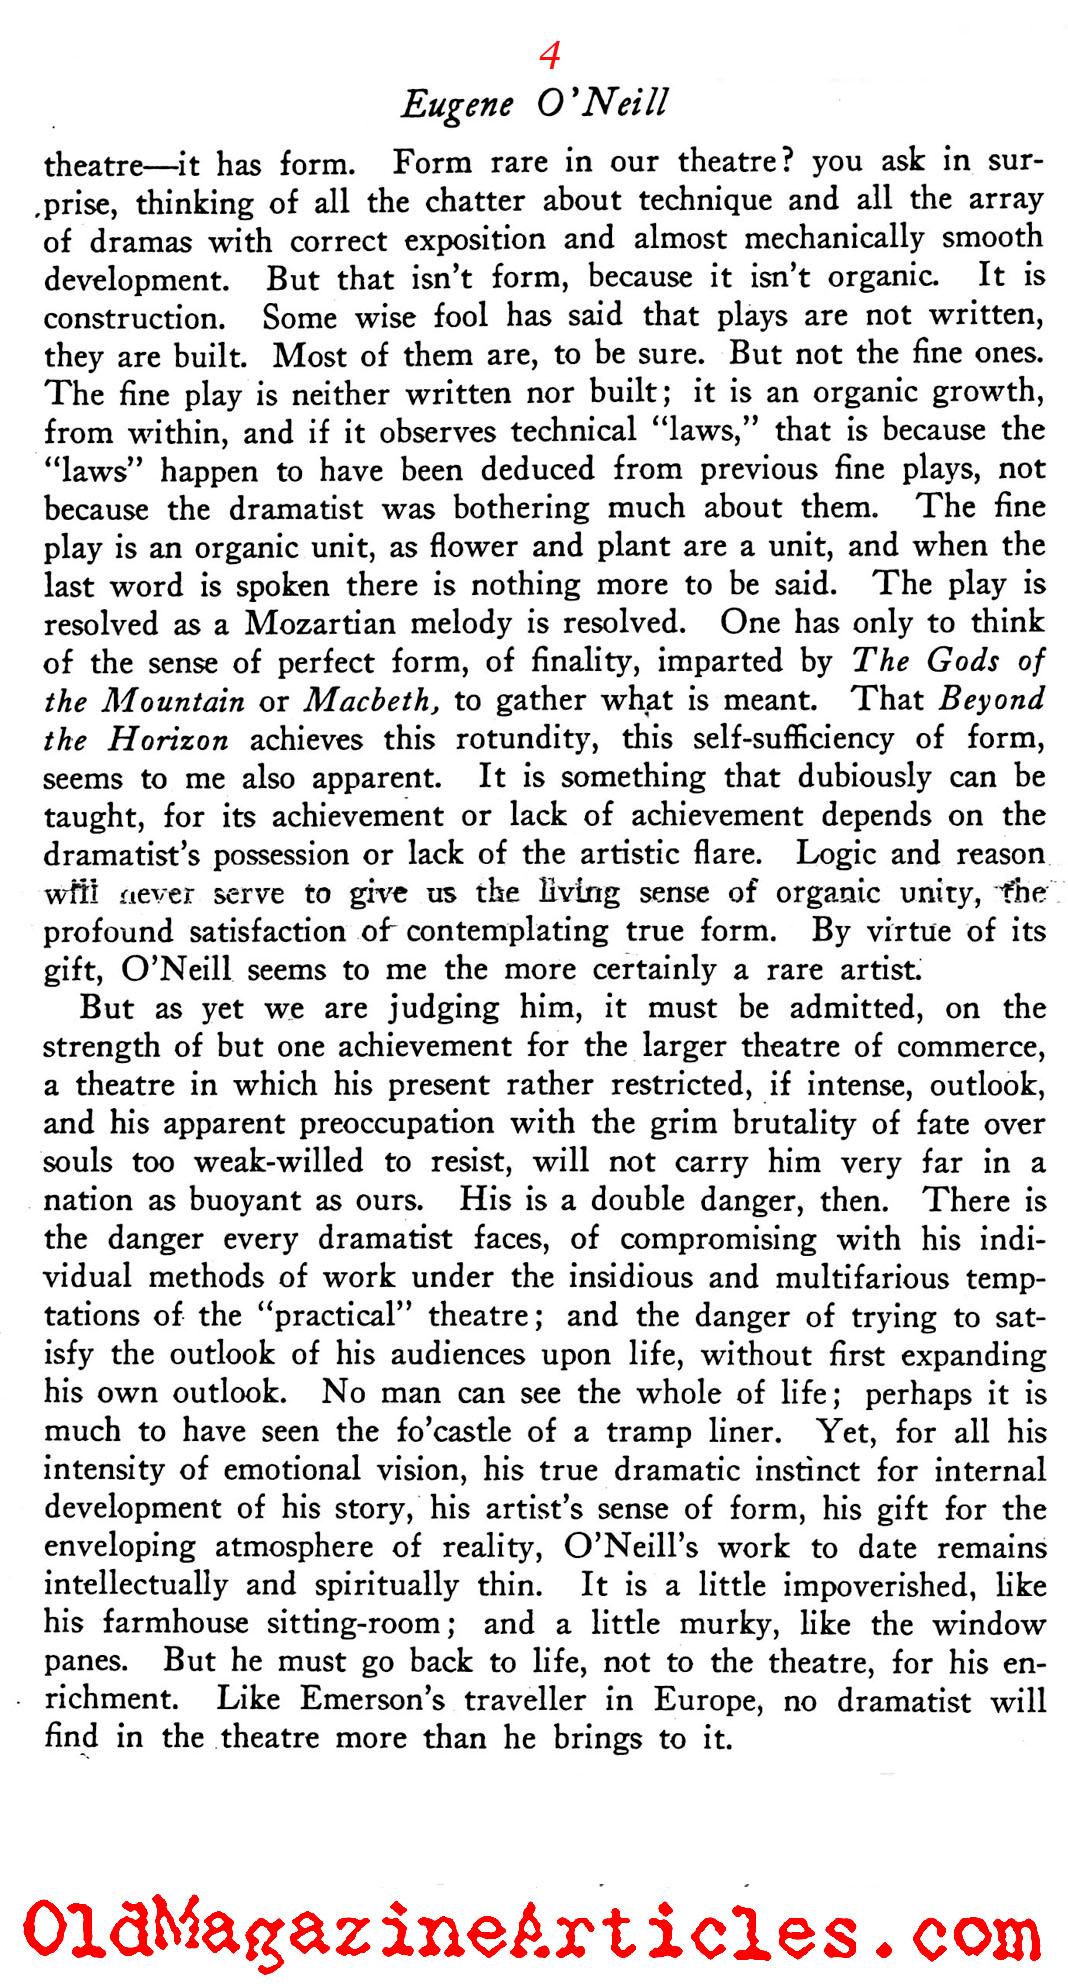 Harsh Words for Eugene O'Neill (Theatre Arts Magazine, 1920)